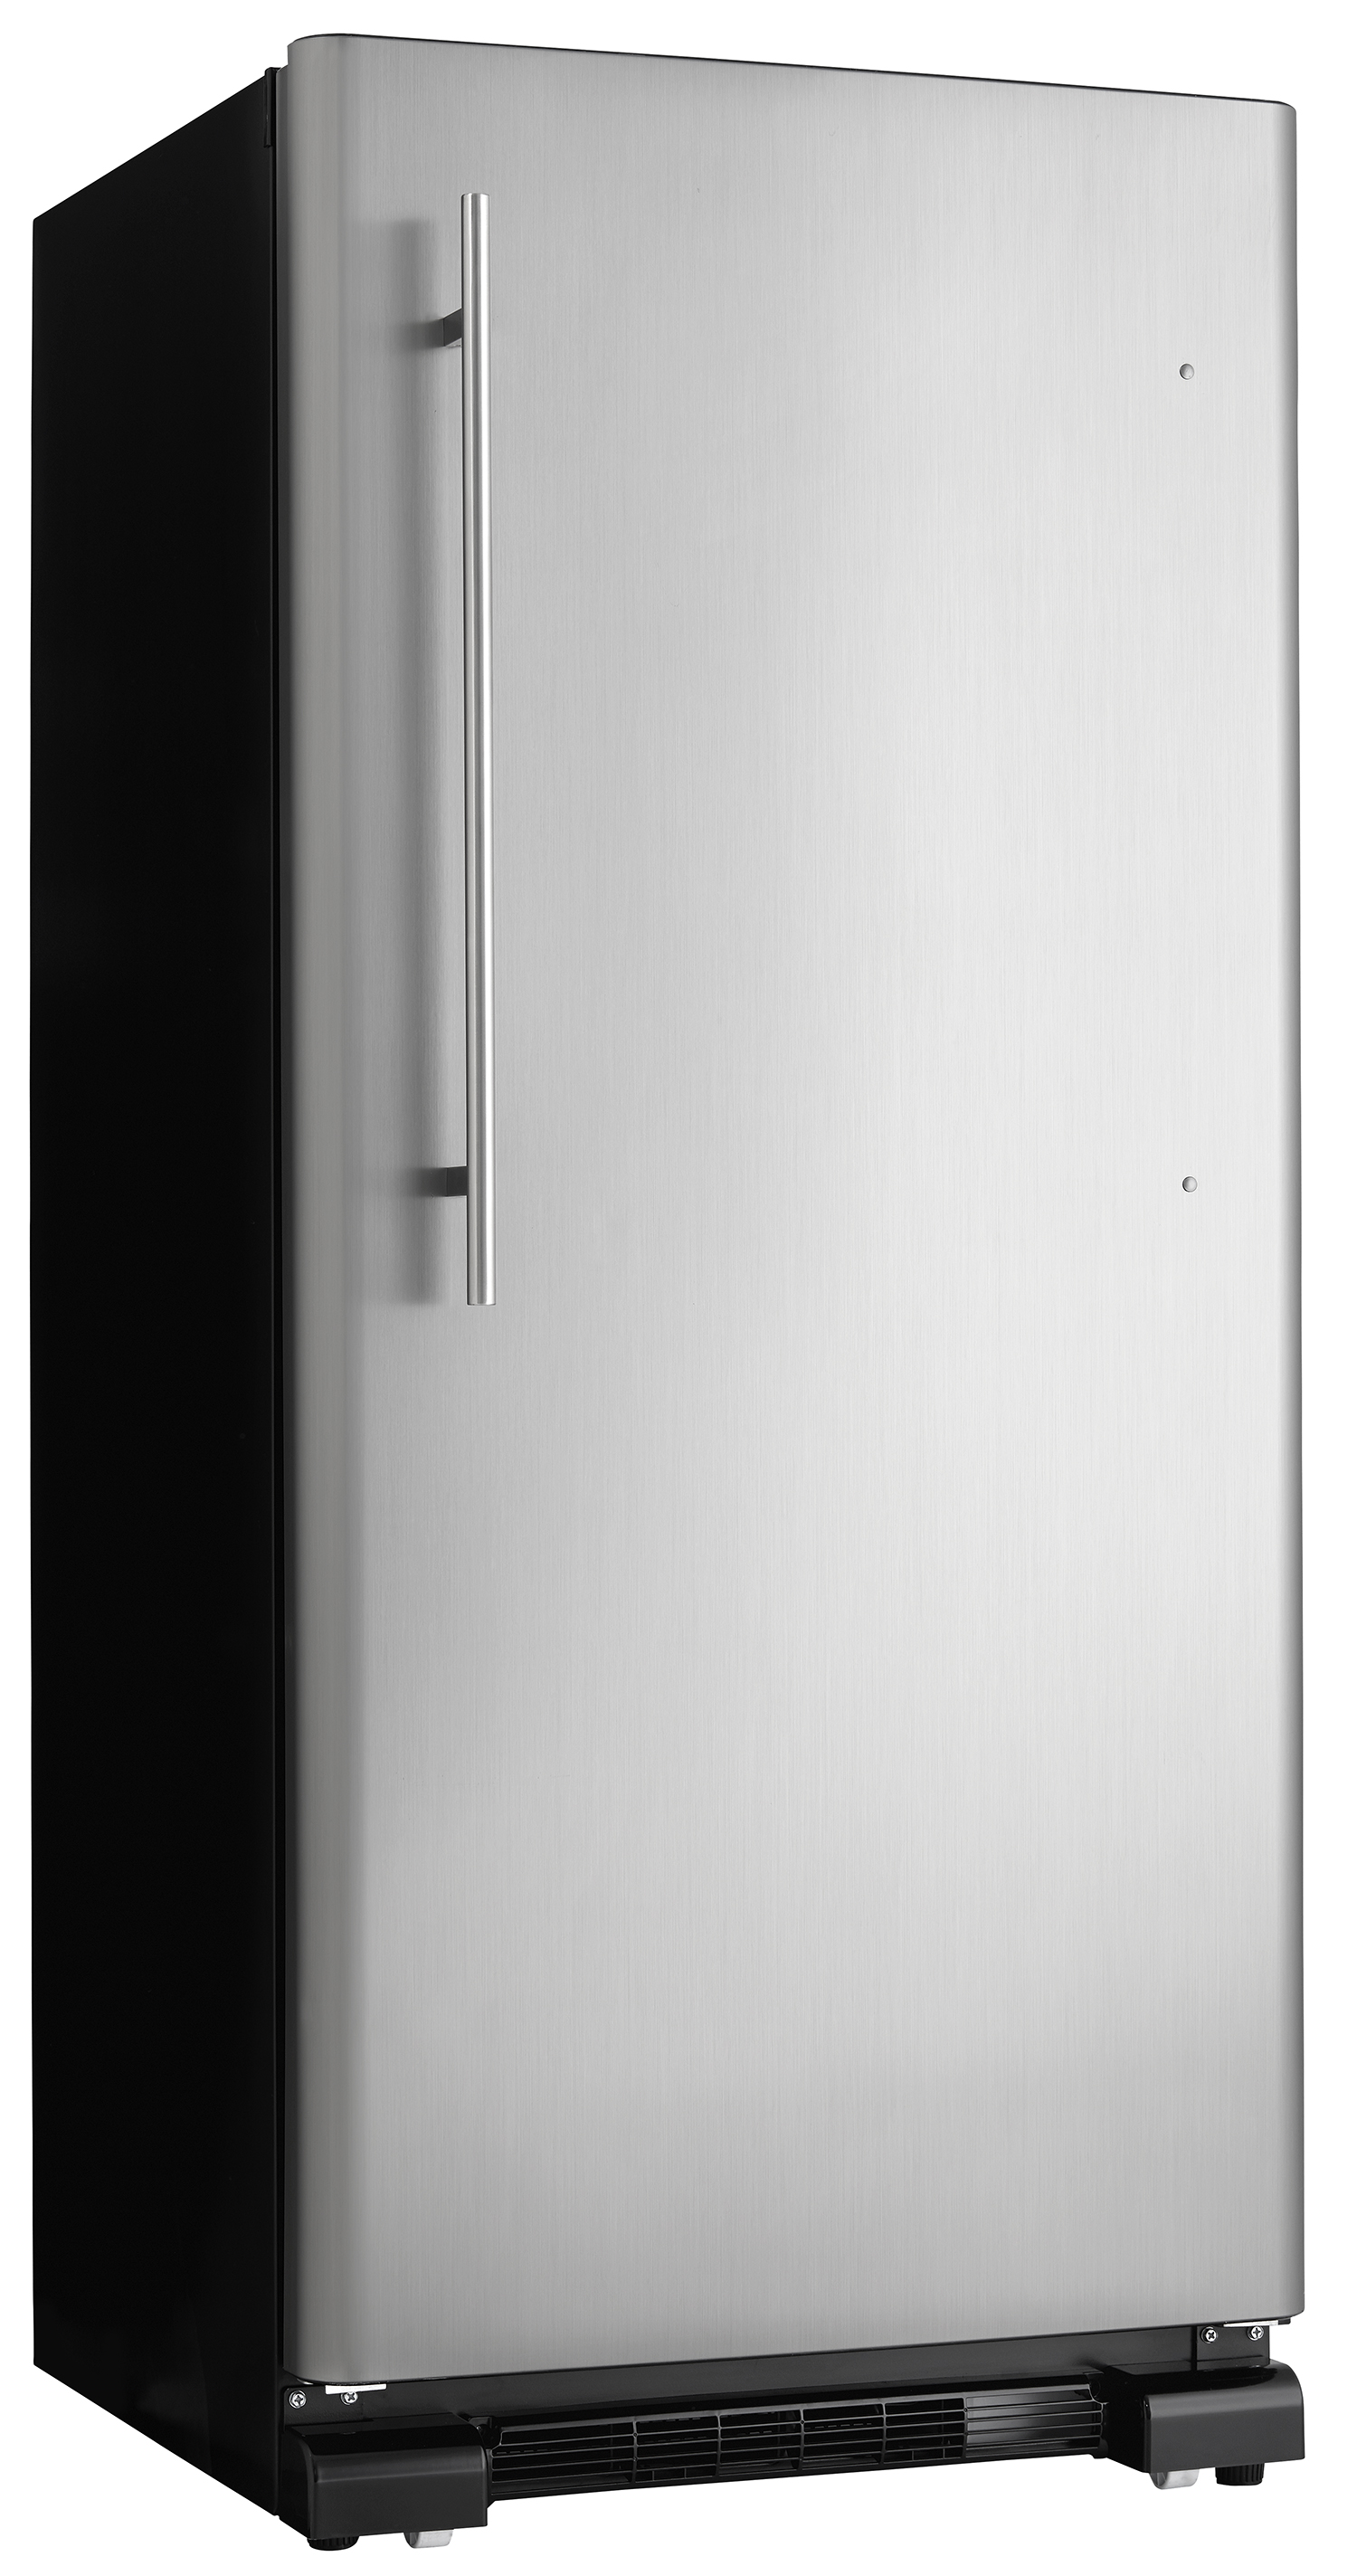 Danby® 17 Cu. Ft. Apartment Size Refrigerator-DAR170A2 | Midwest TV ...